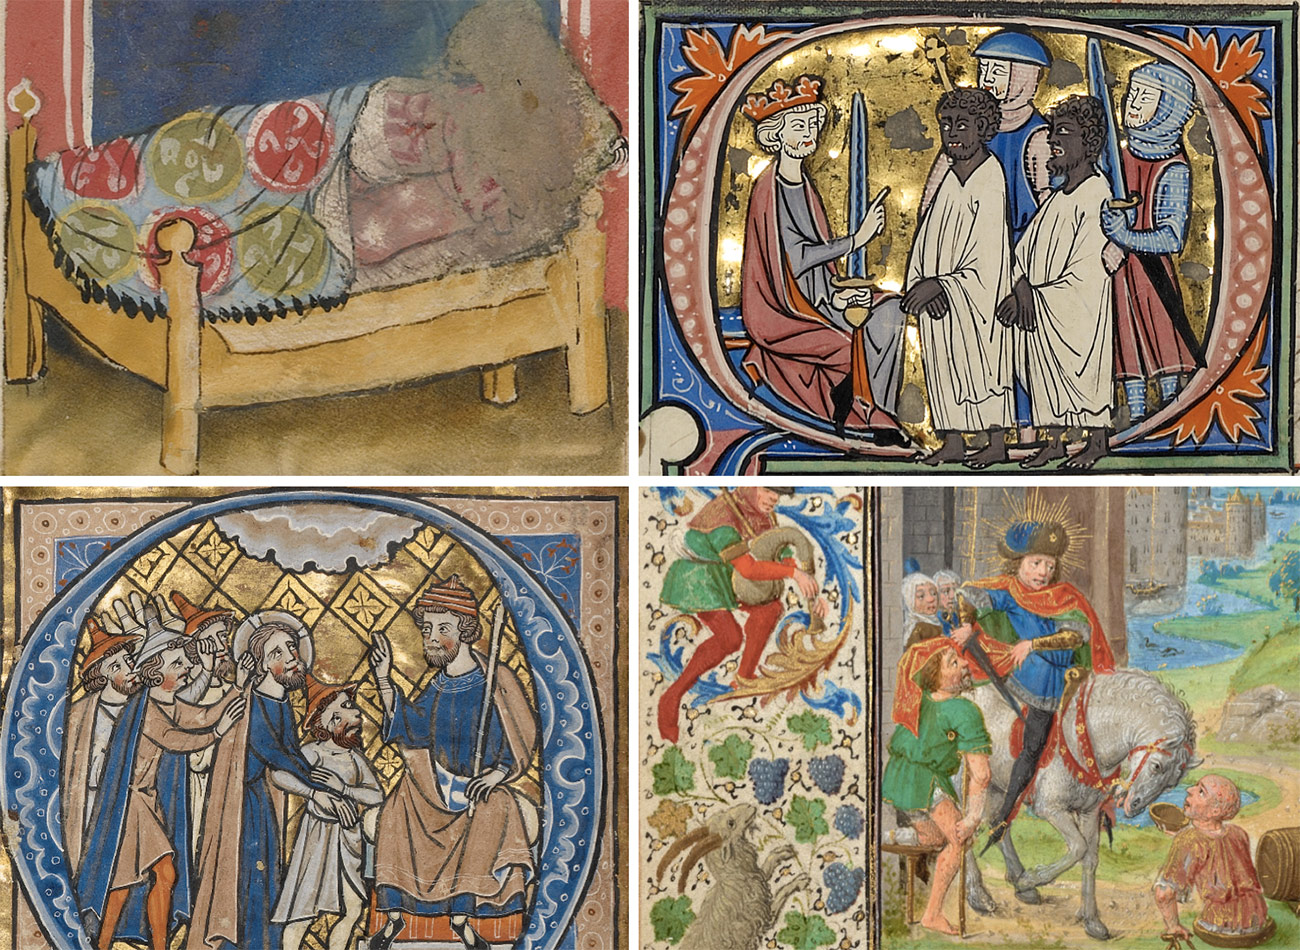 Four details from medieval illuminated manuscripts showing non-normative figures of the Middle Ages